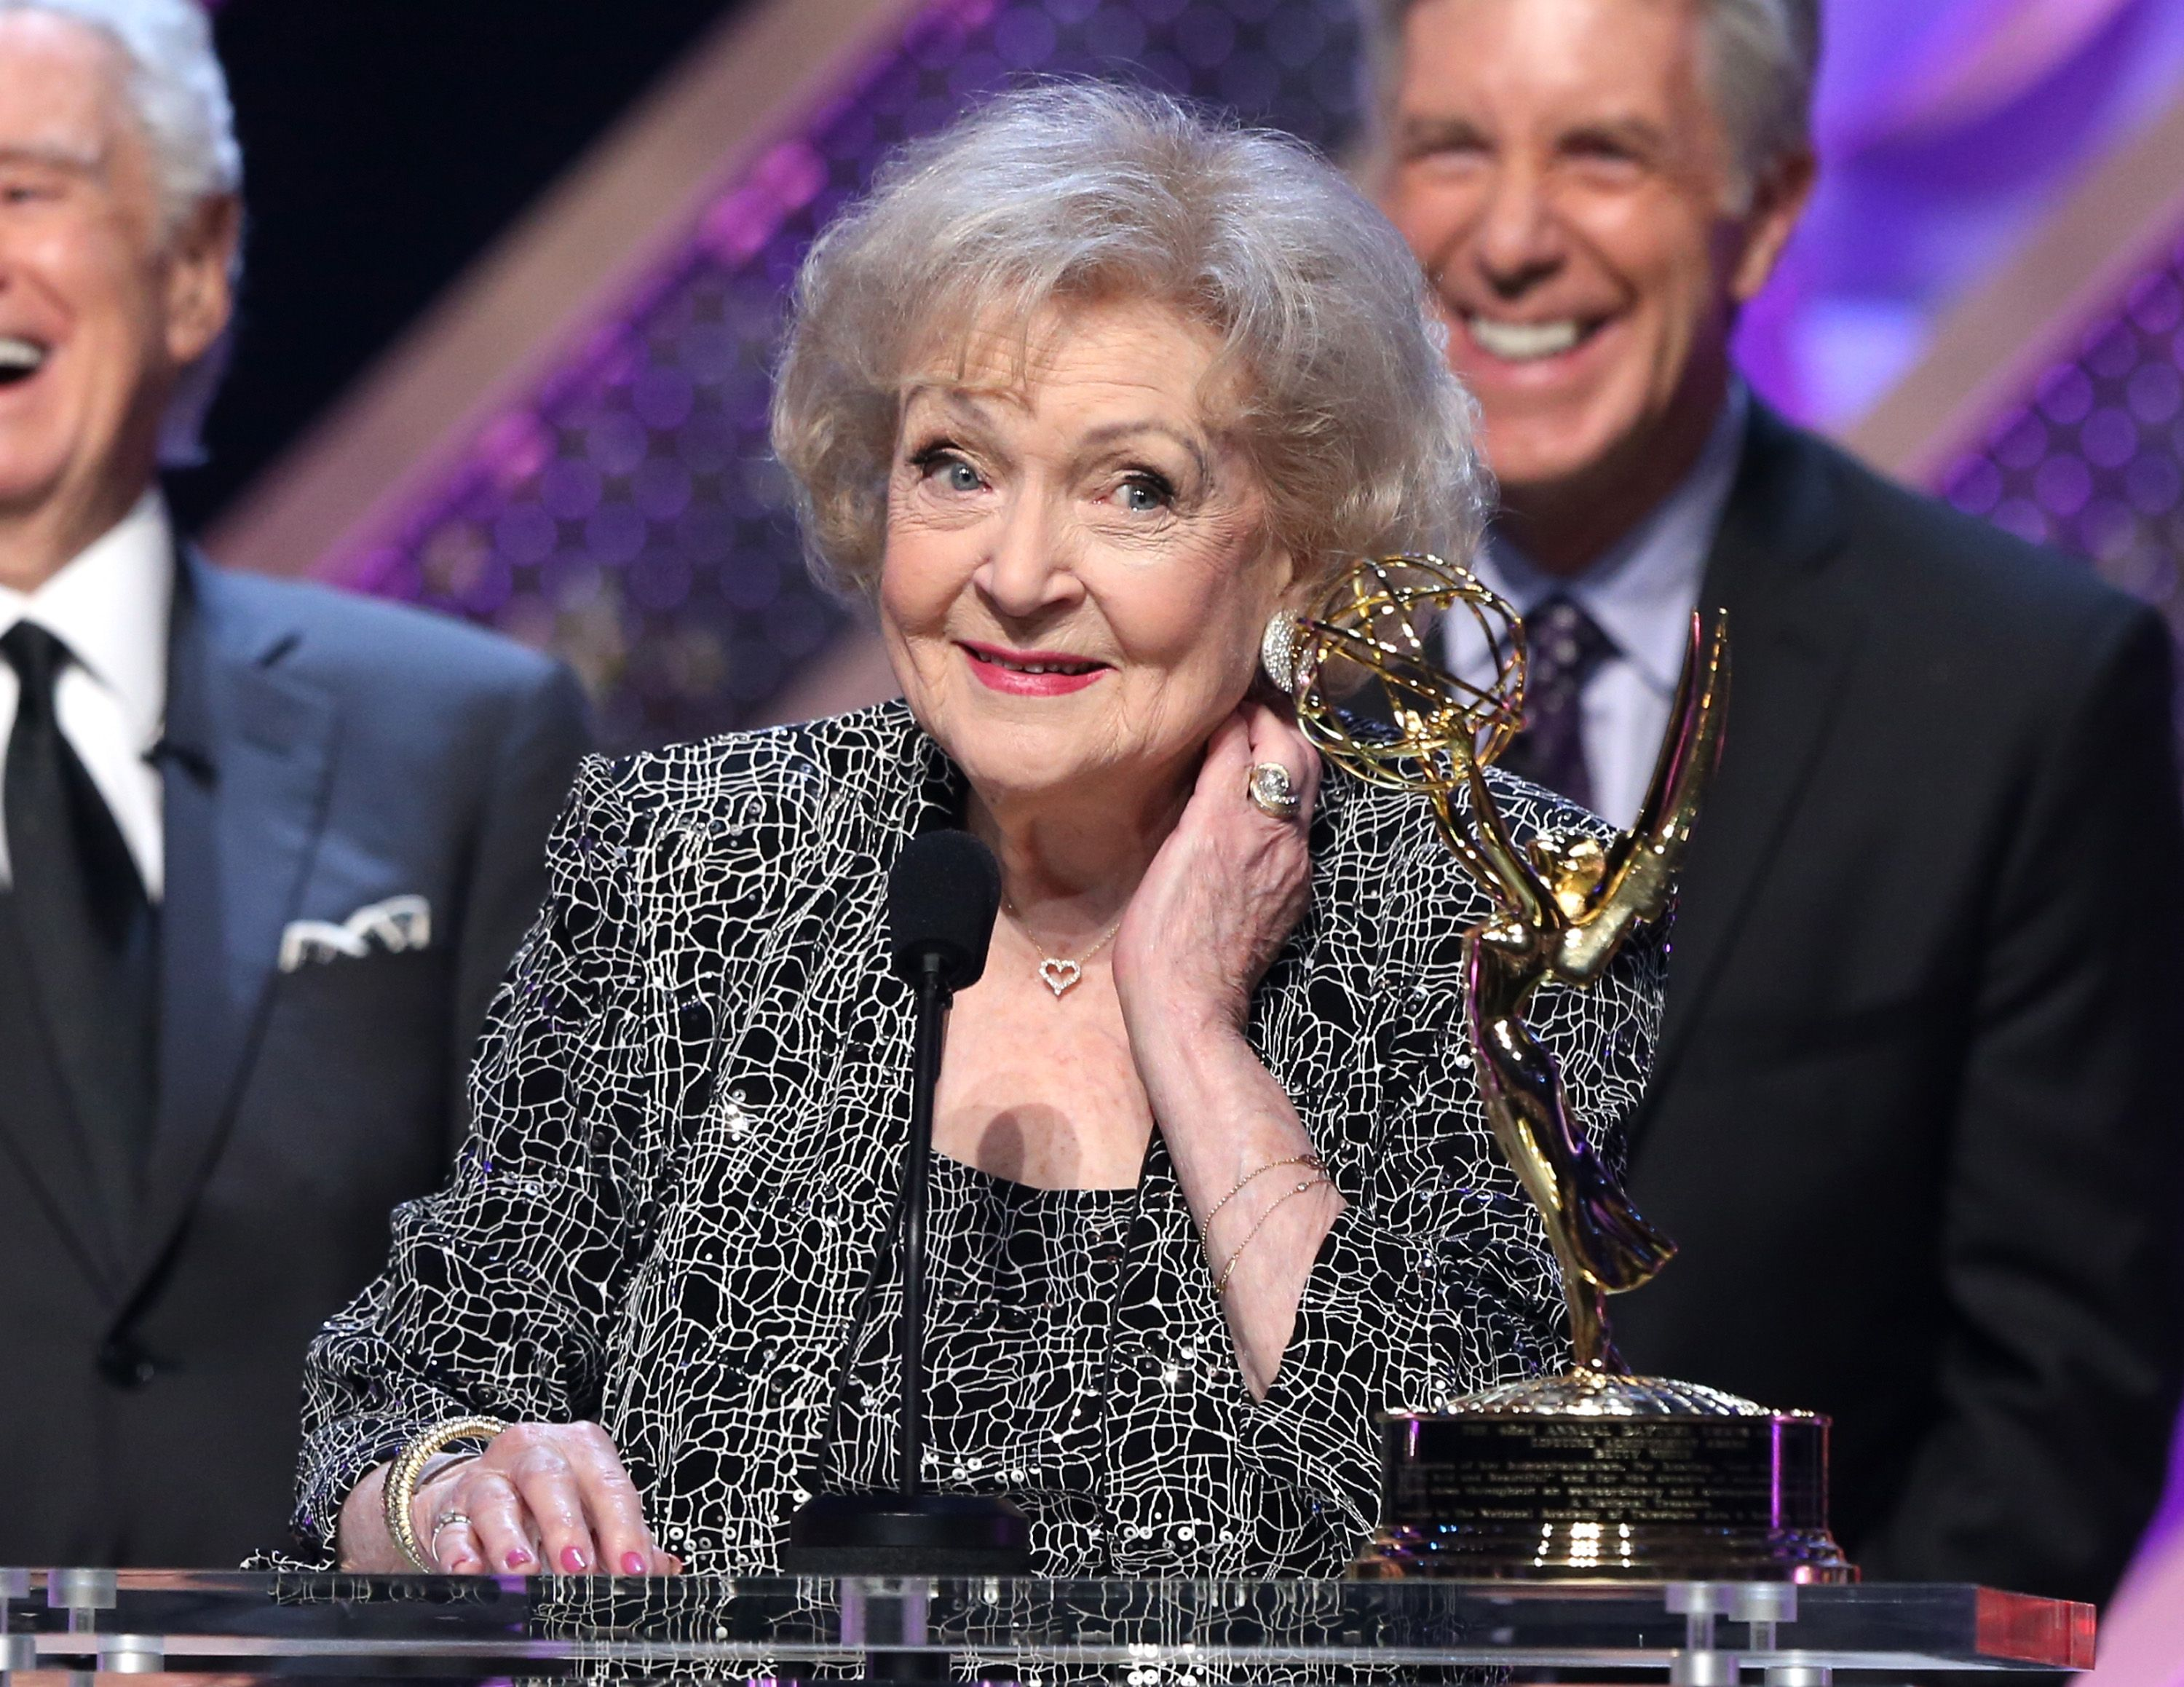 Betty White accepts Daytime Emmy Lifetime Achievement Award onstage at Warner Bros. Studios on April 26, 2015 | Photo: Getty Images